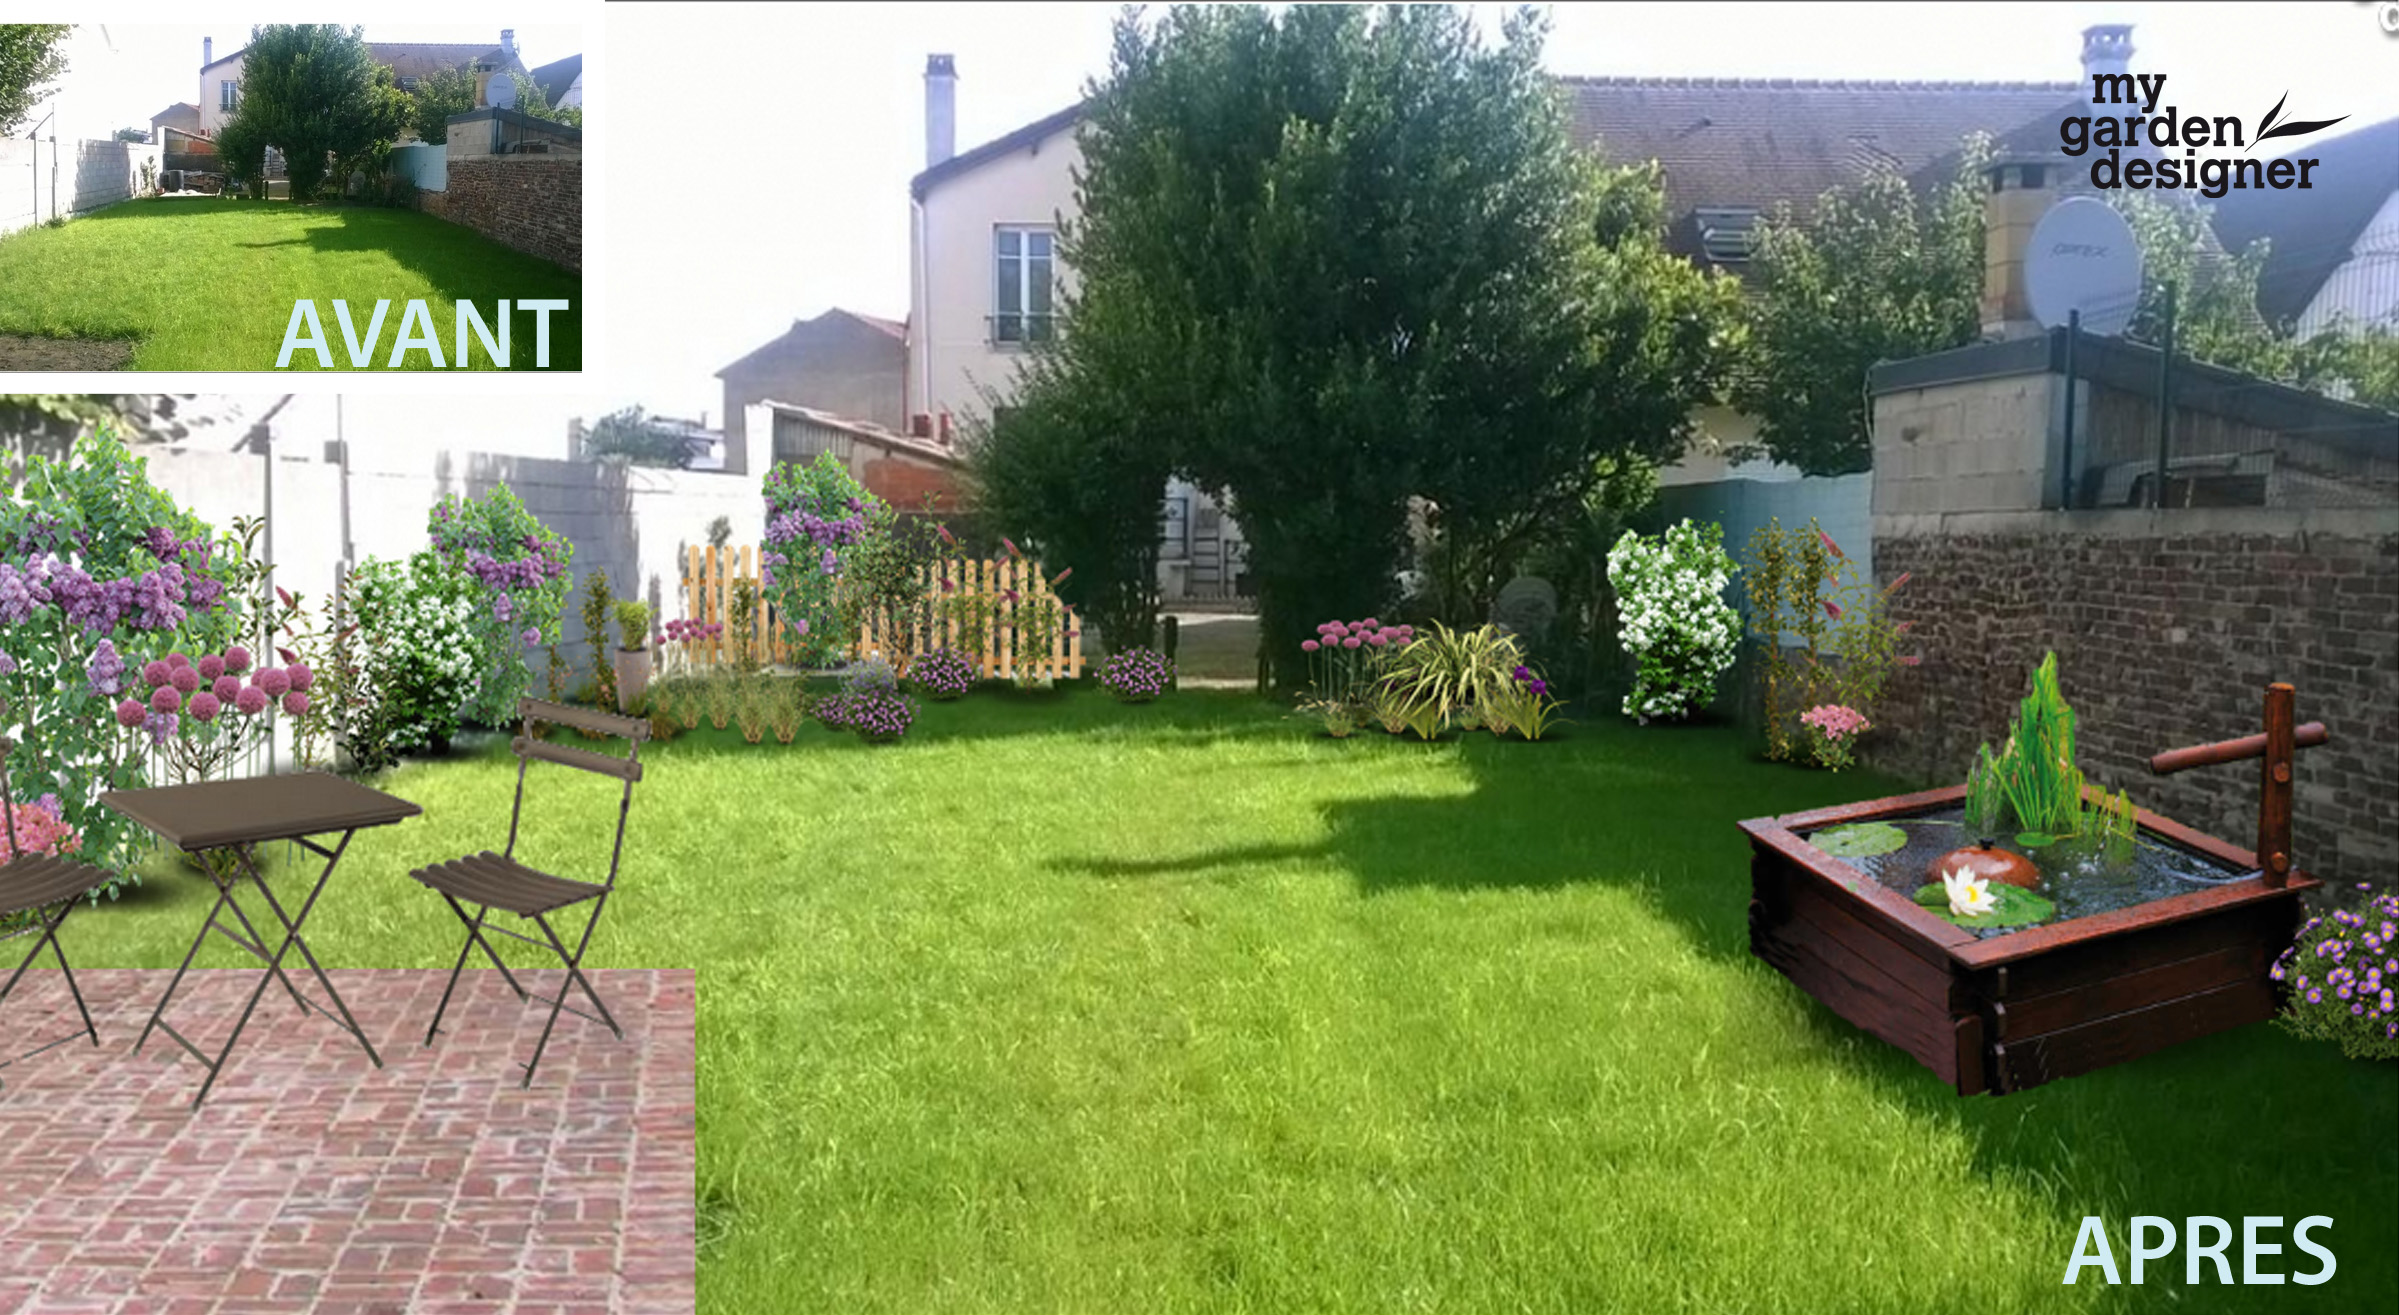 Am nager un jardin carr en ile de france monjardin for Carre jardin